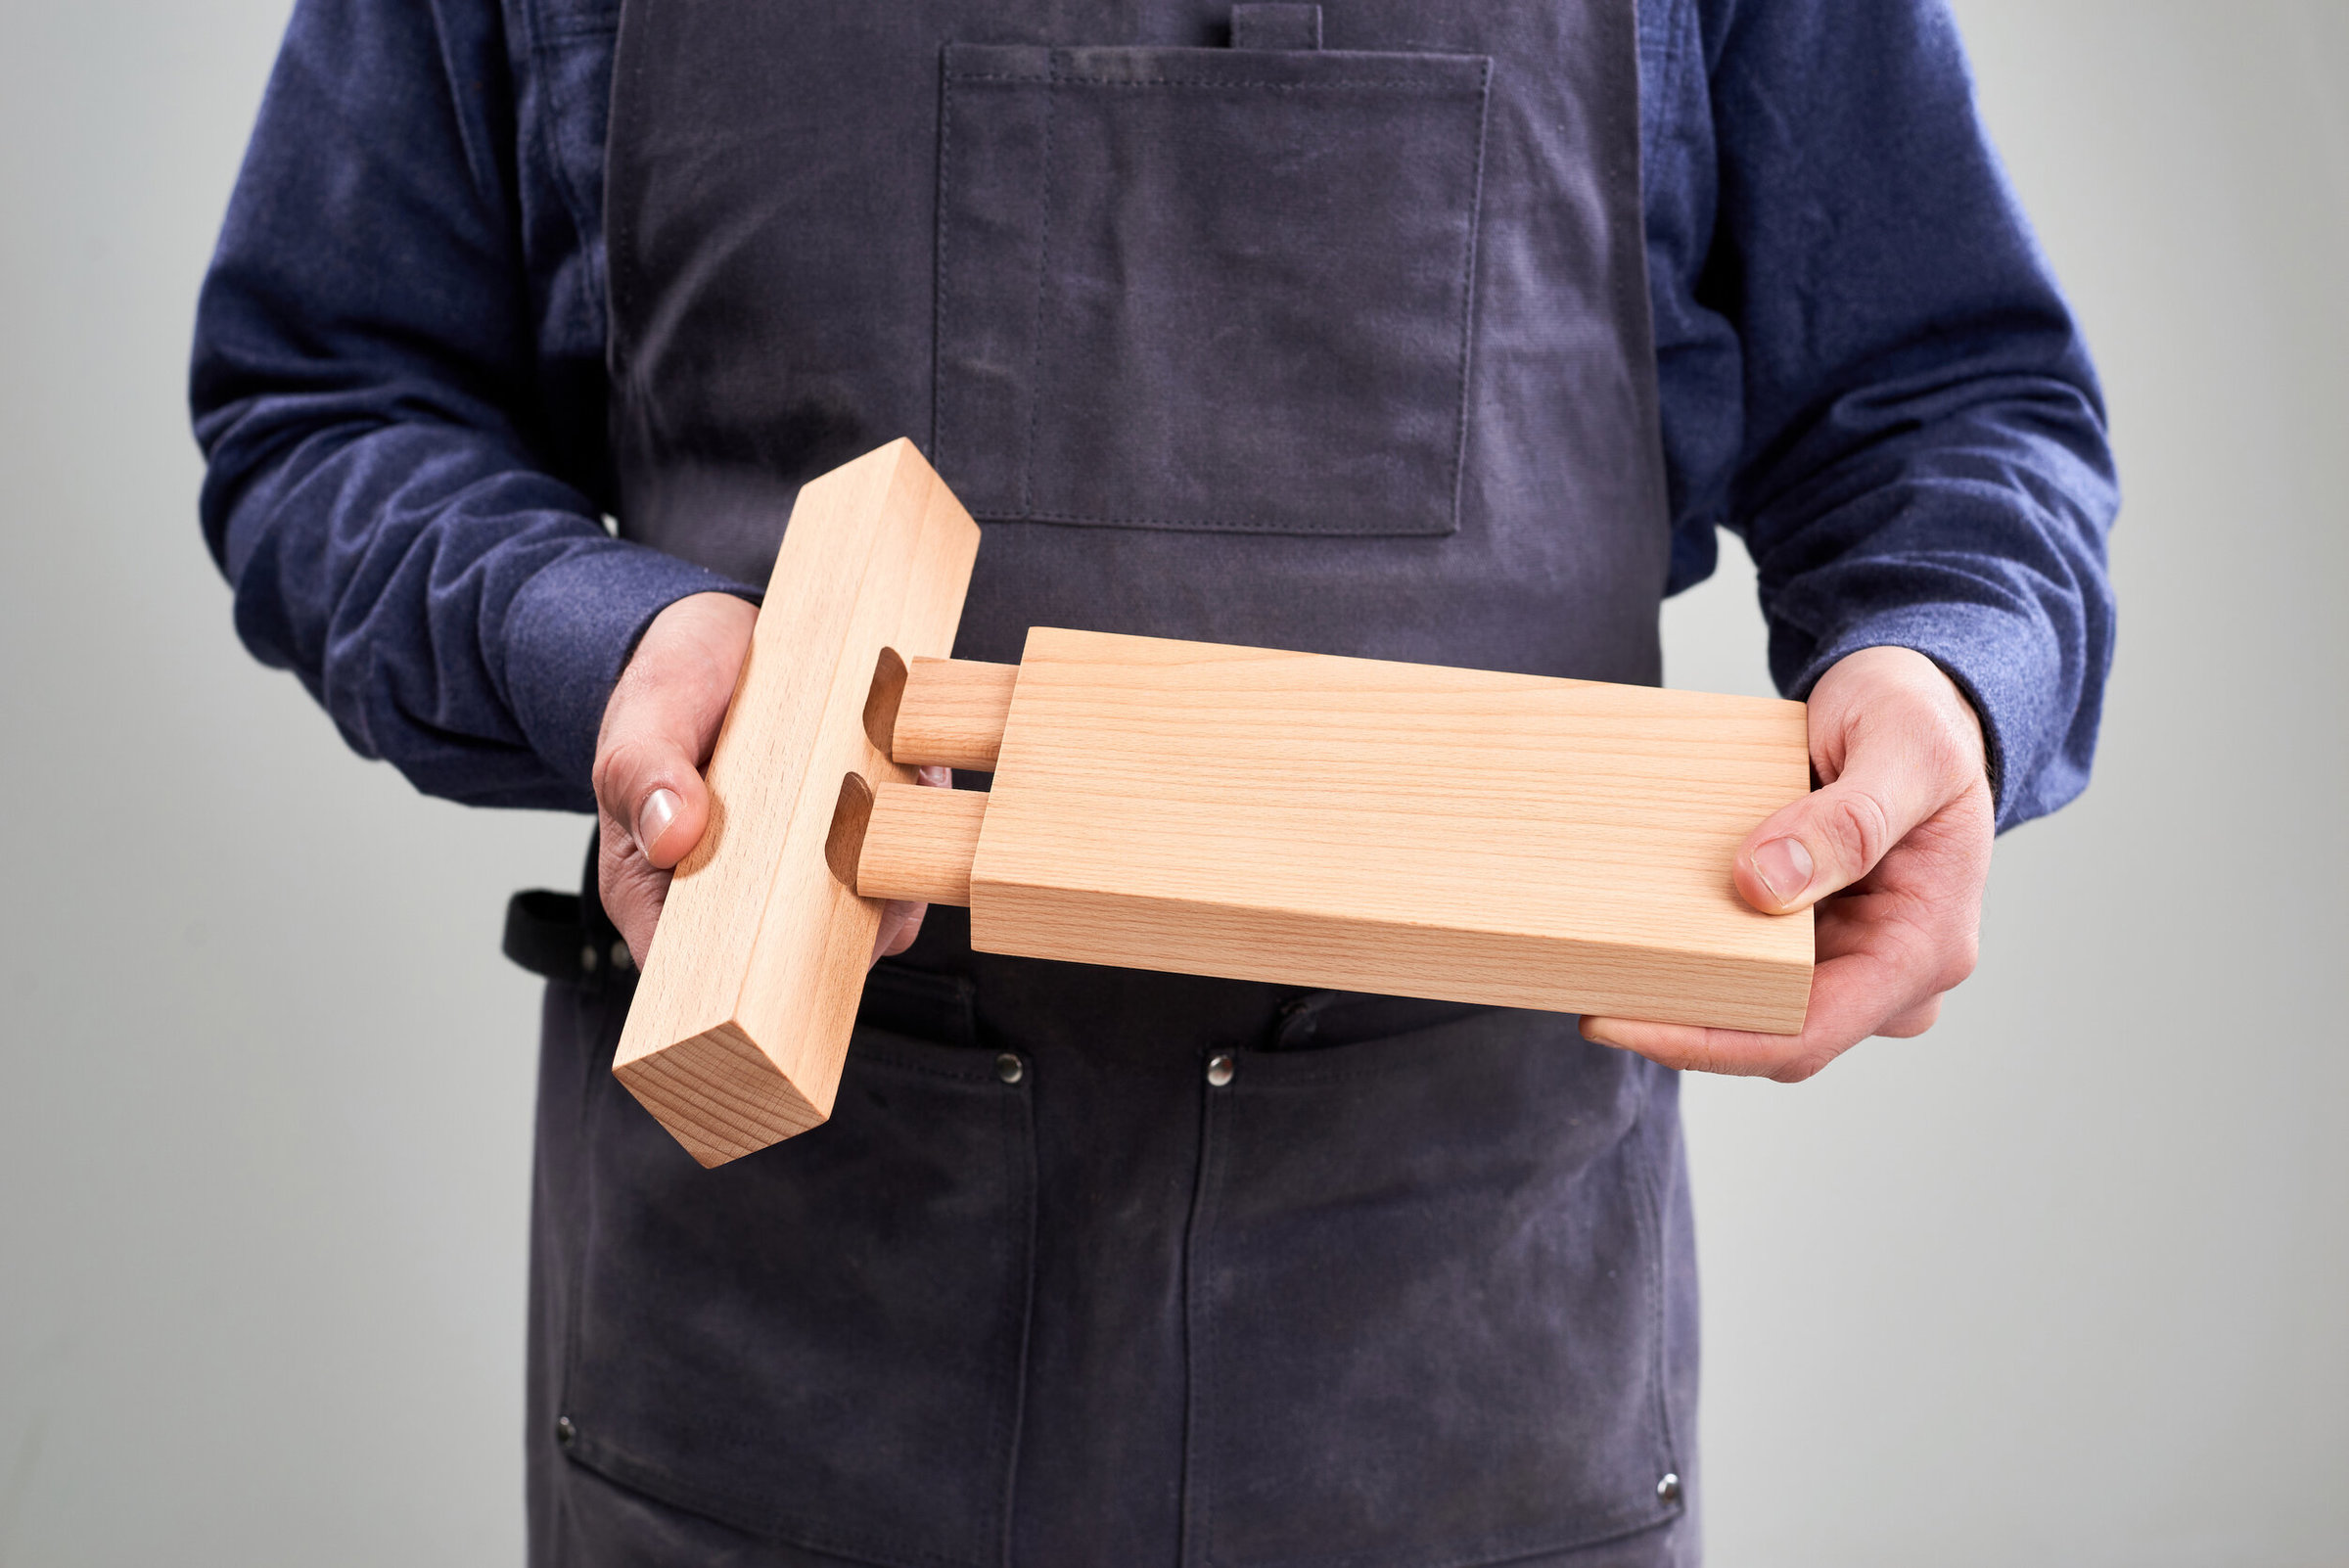 Joinery_0366+Reduced+File+Size.jpg